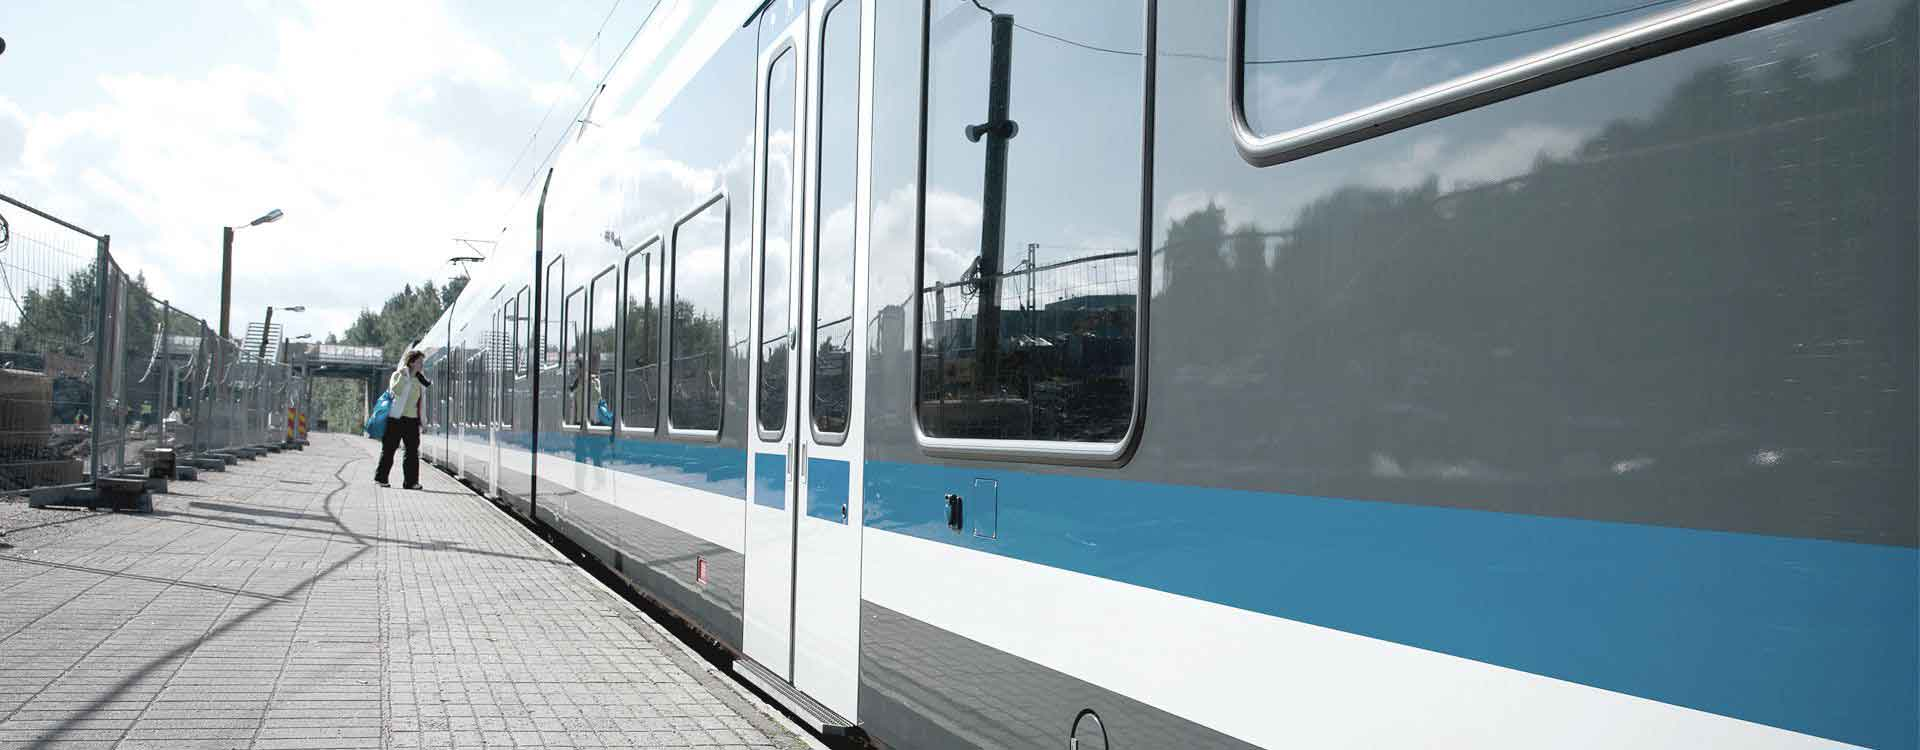 Ring-Railway-to-Helsinki-Vantaa-Airport-Rail-and-Transit